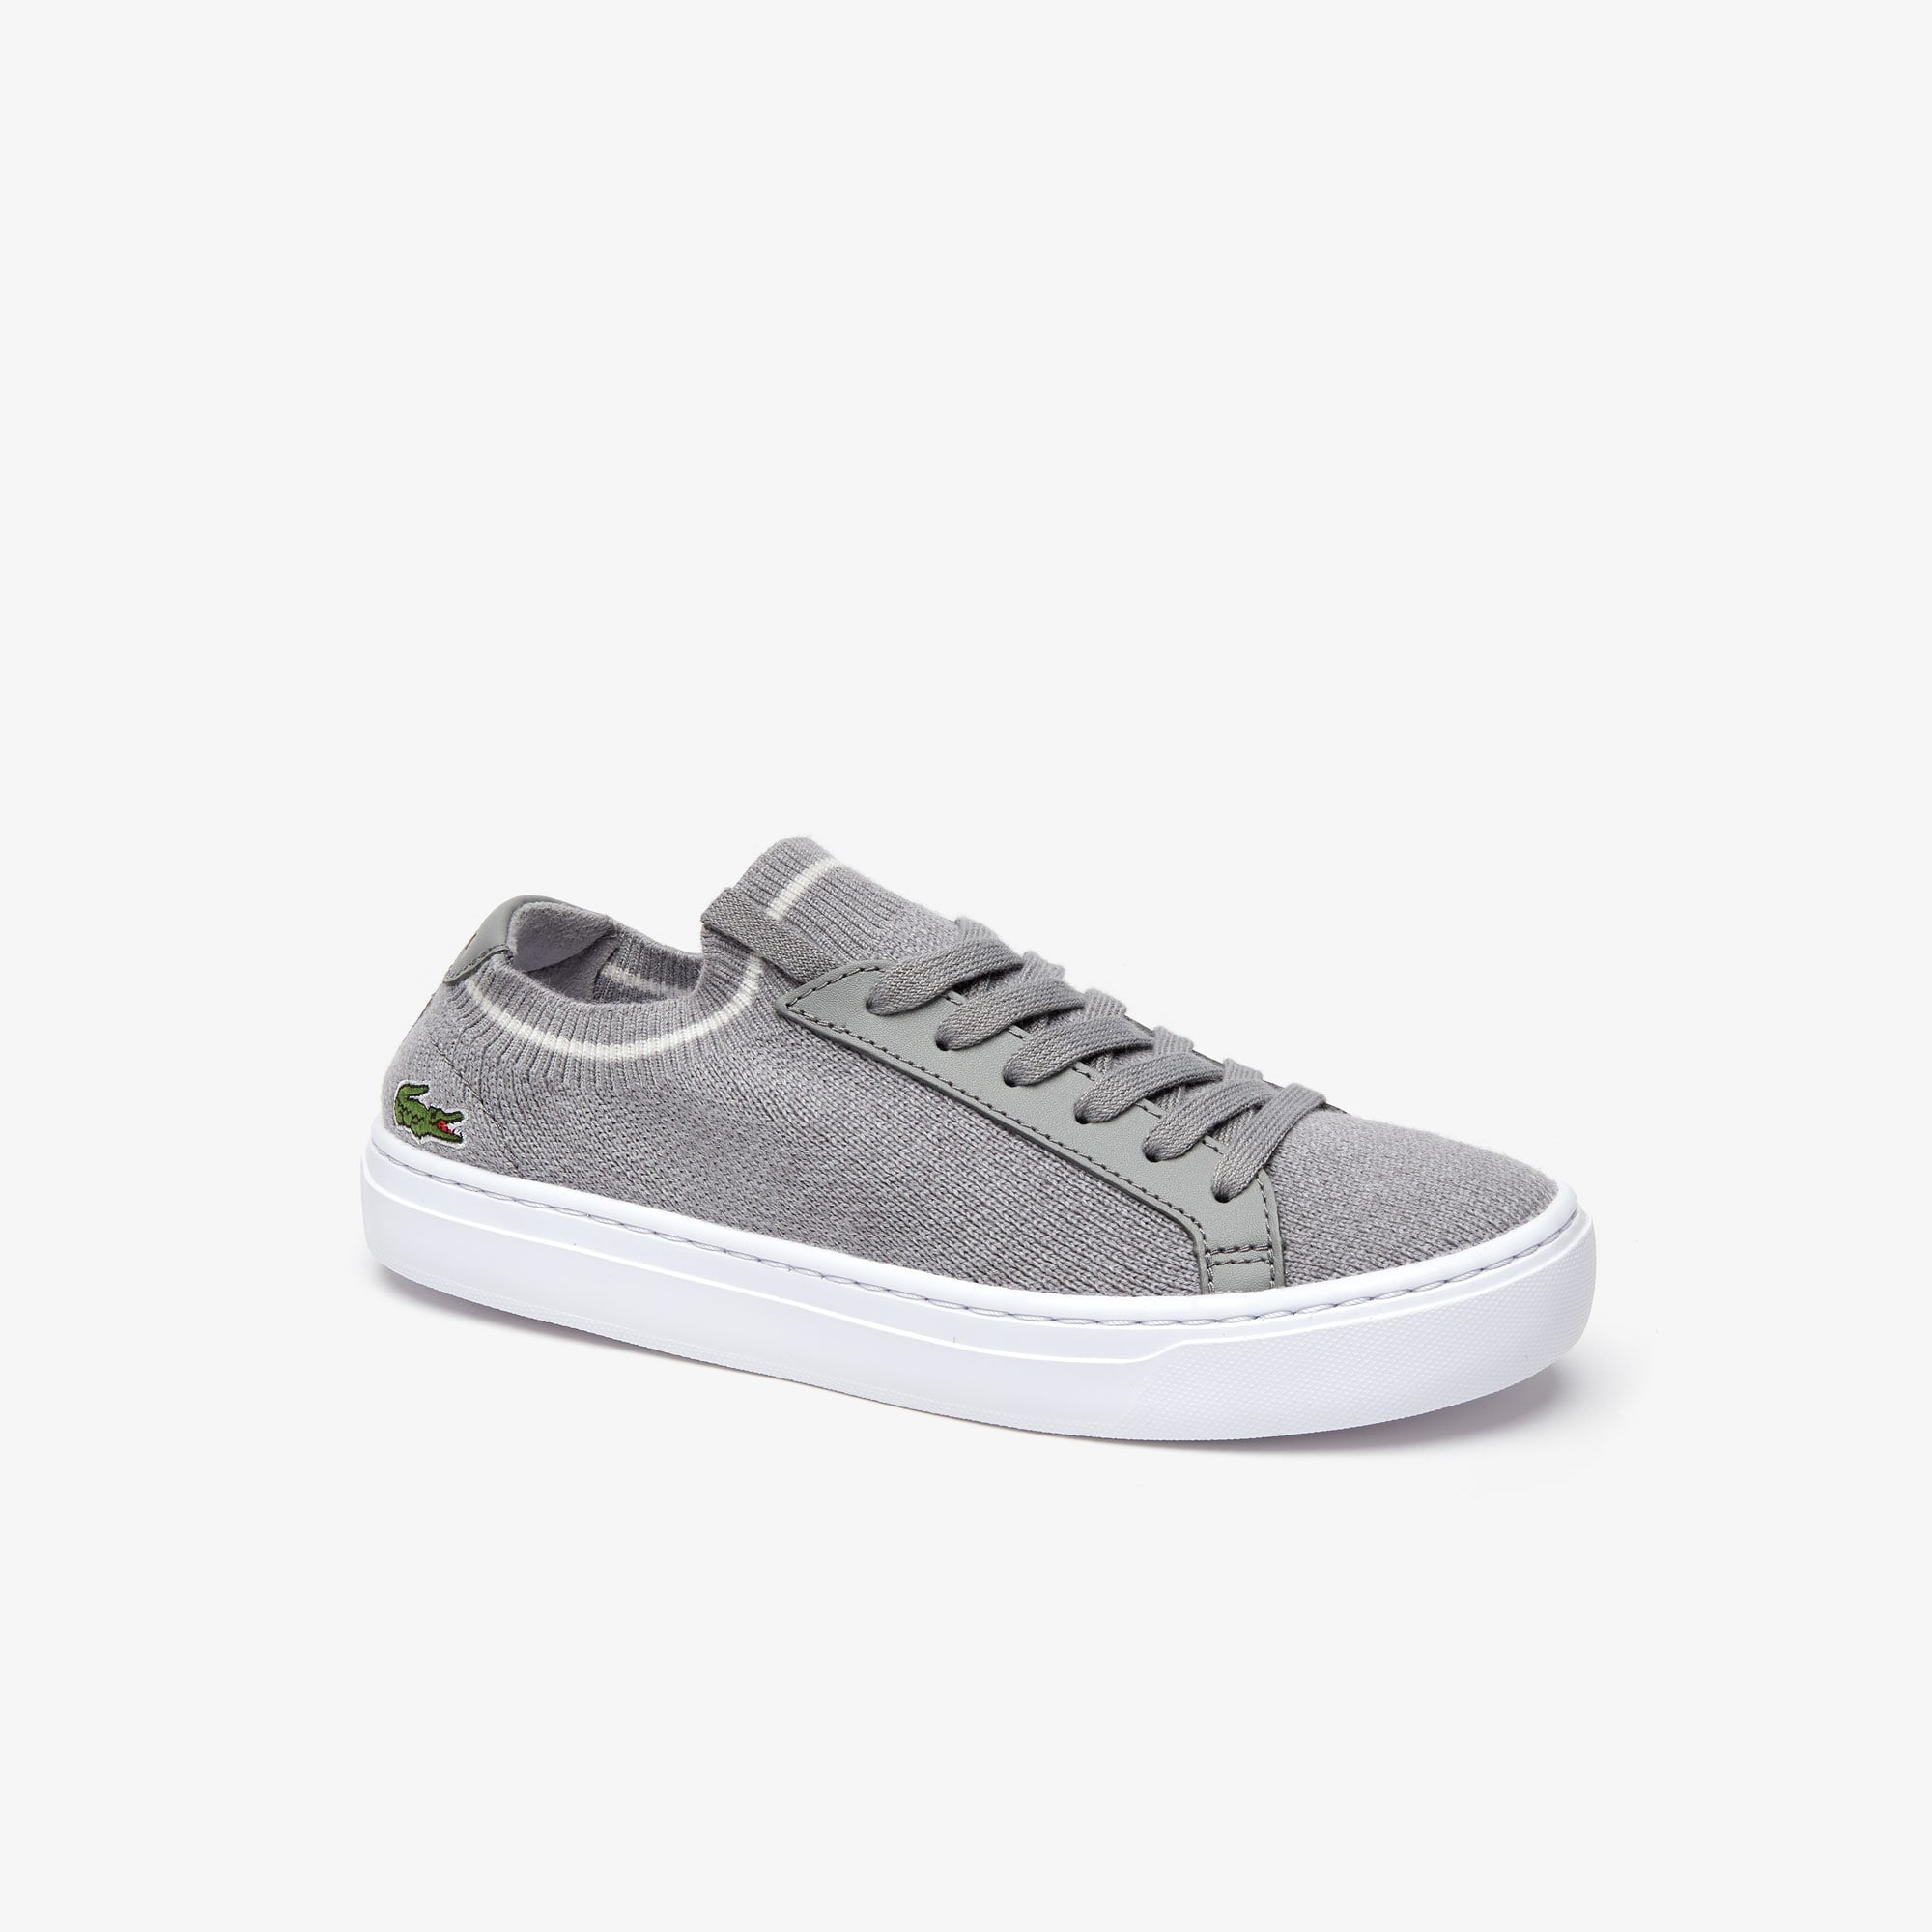 Chaussures Lacoste Lacoste FemmeCollection Chaussures FemmeCollection FemmeCollection Chaussures Lacoste Chaussures iuOPXkZ